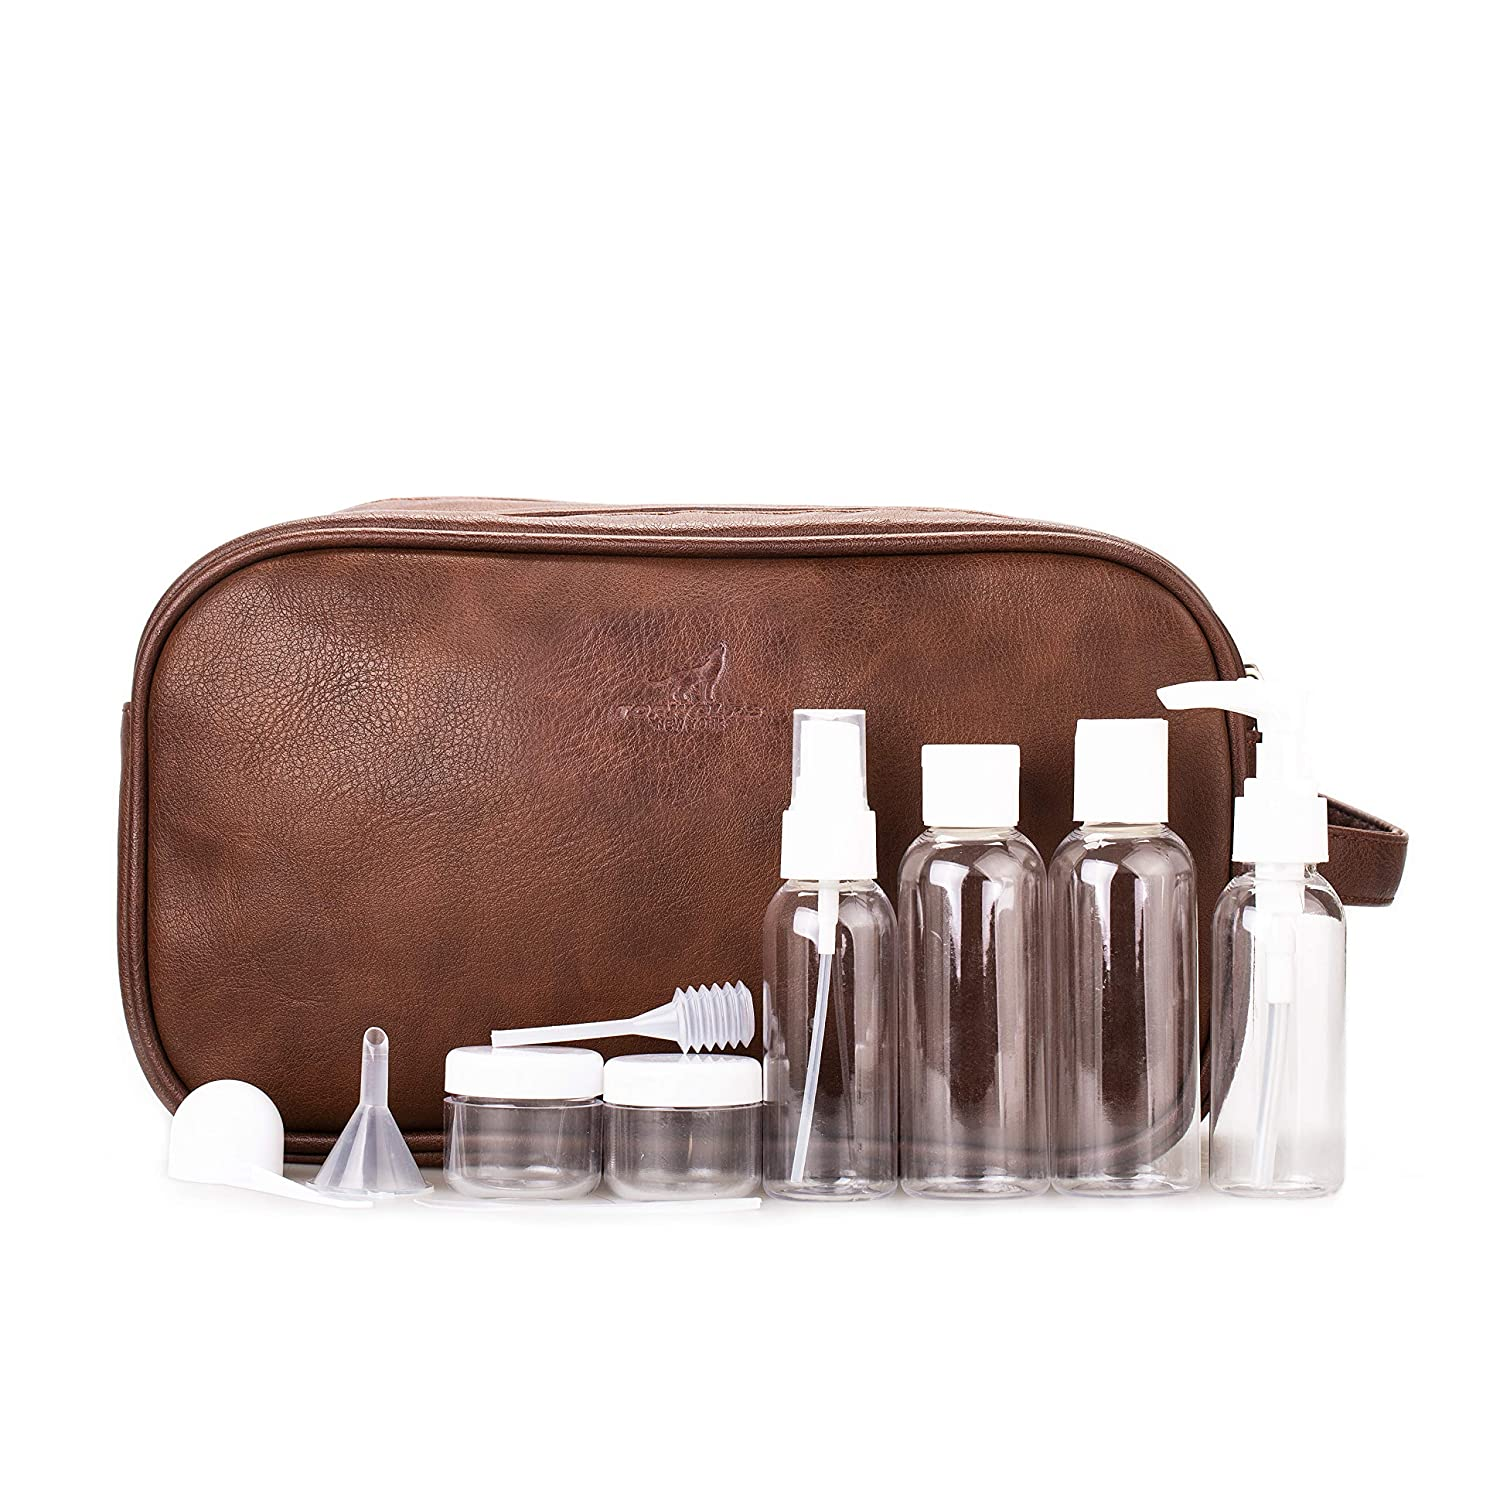 Toiletry Bag for Men TOPWOLF Travel Kit Dual Compartments Travel Overnight Bag Dopp Kit PU Leather with Travel Bottles Gift